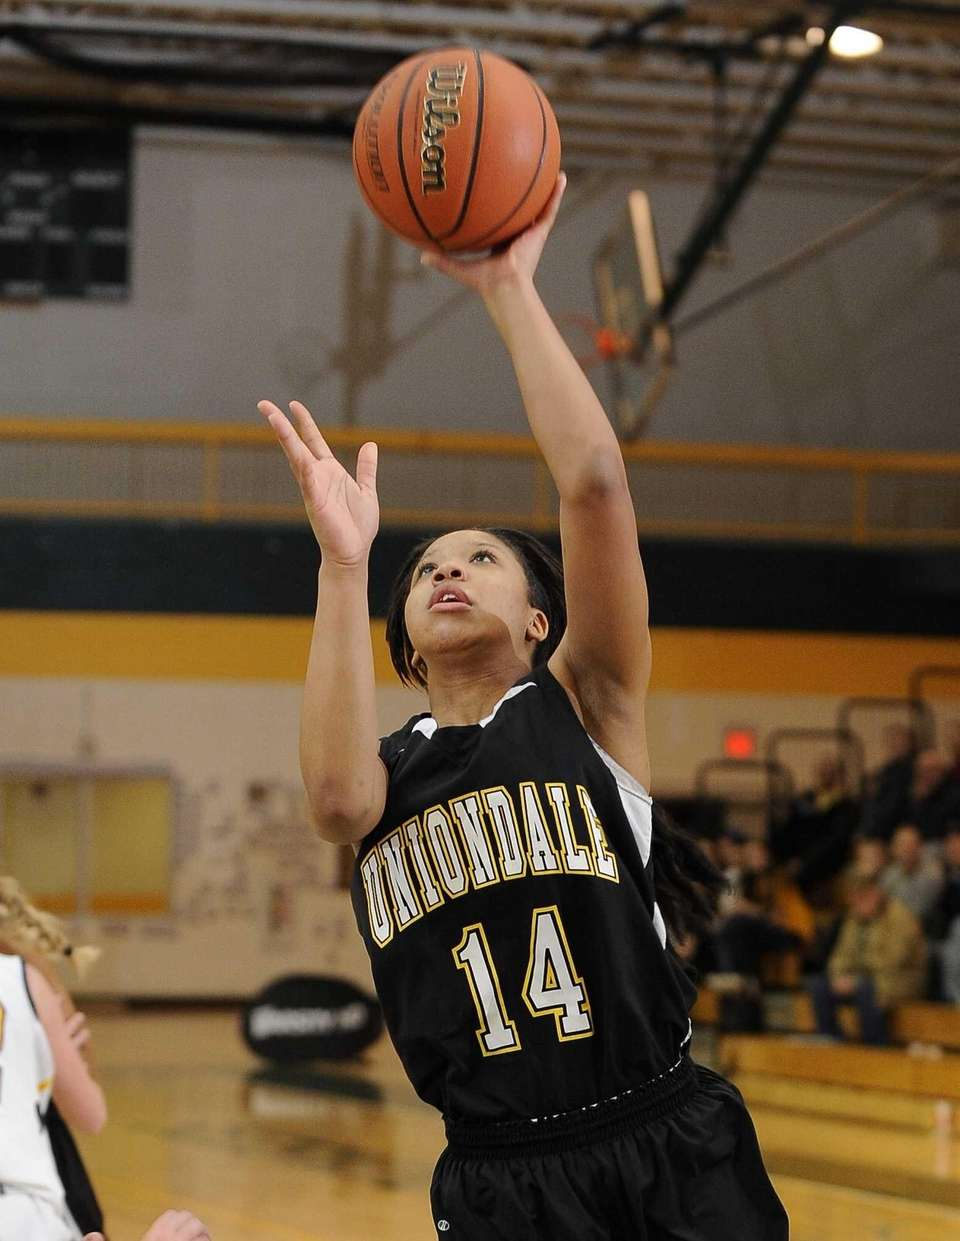 Uniondale's Jayda Hyatt scores against Massapequa in the